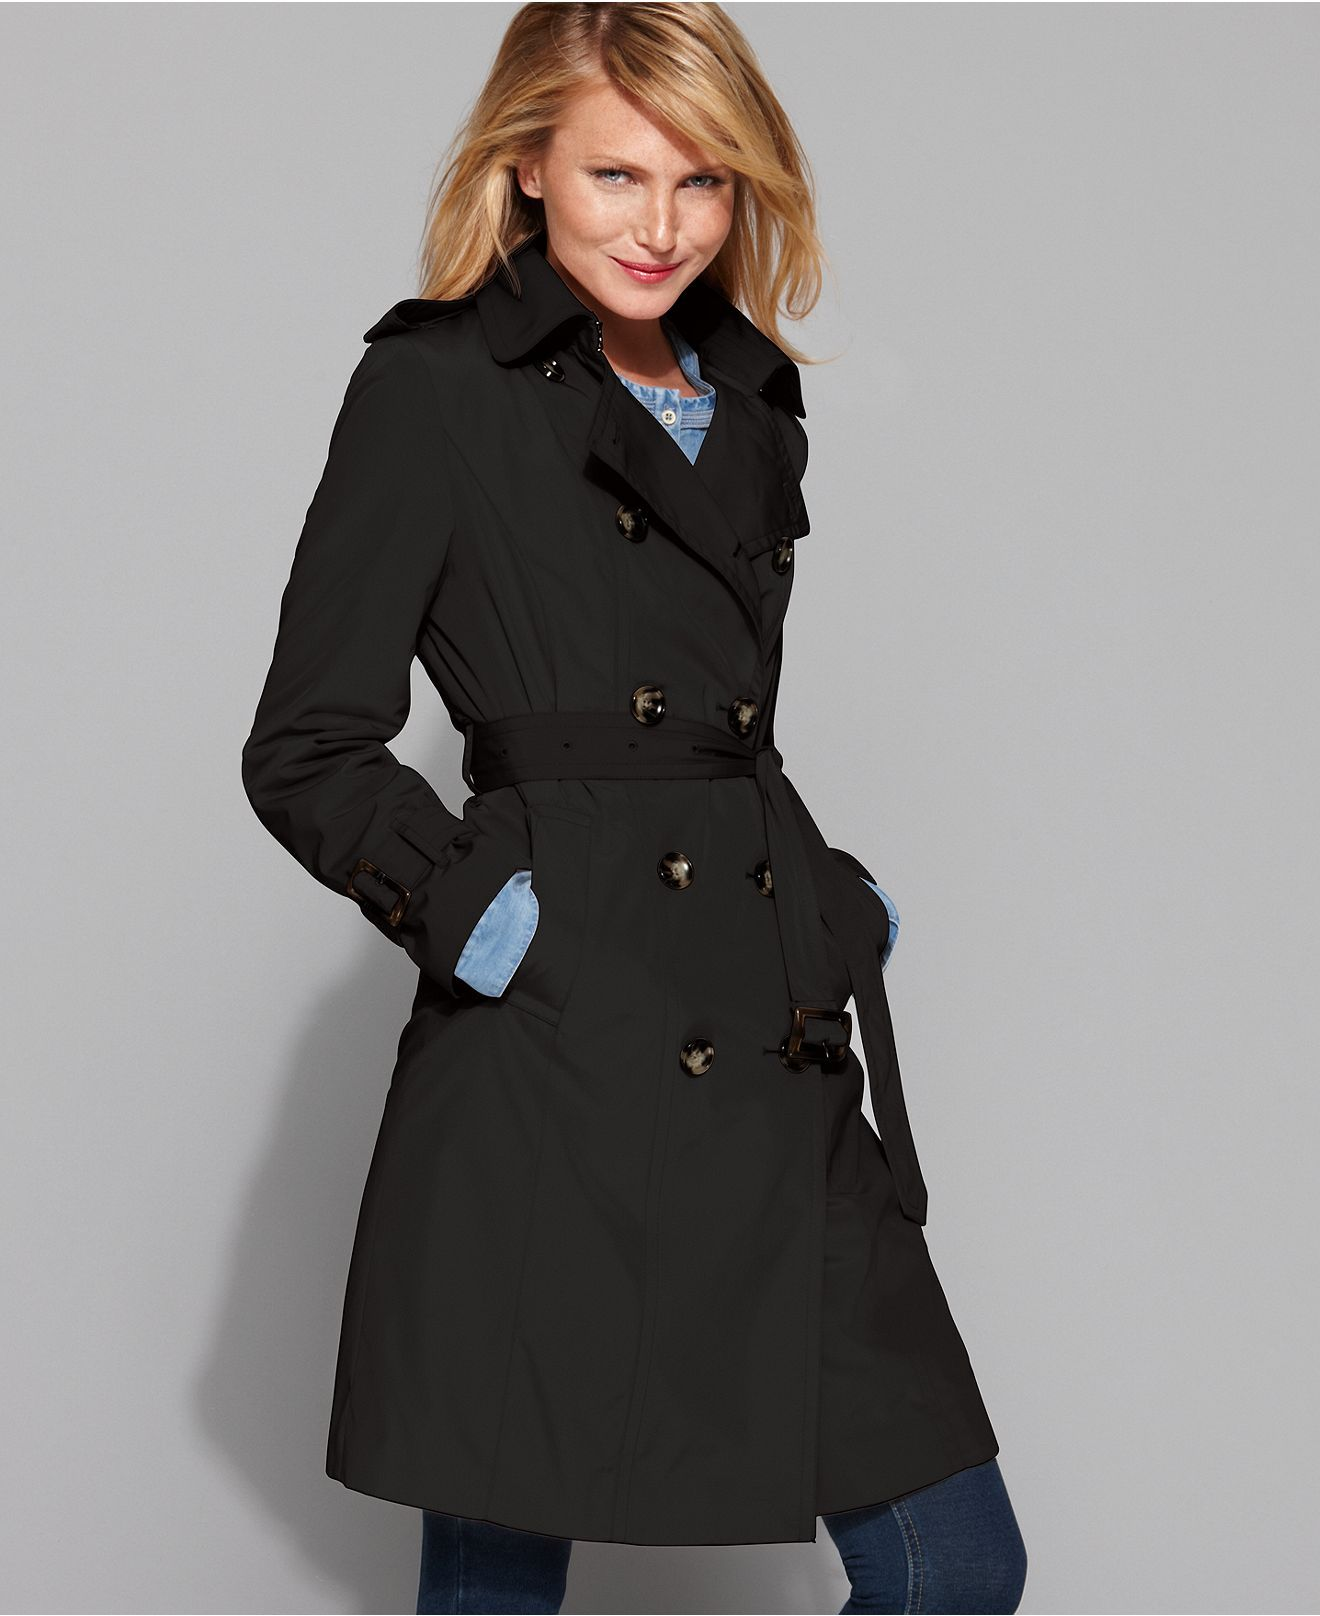 6e054c078 London Fog Petite Coat, Classic Belted Trench Coat - Womens Petite ...